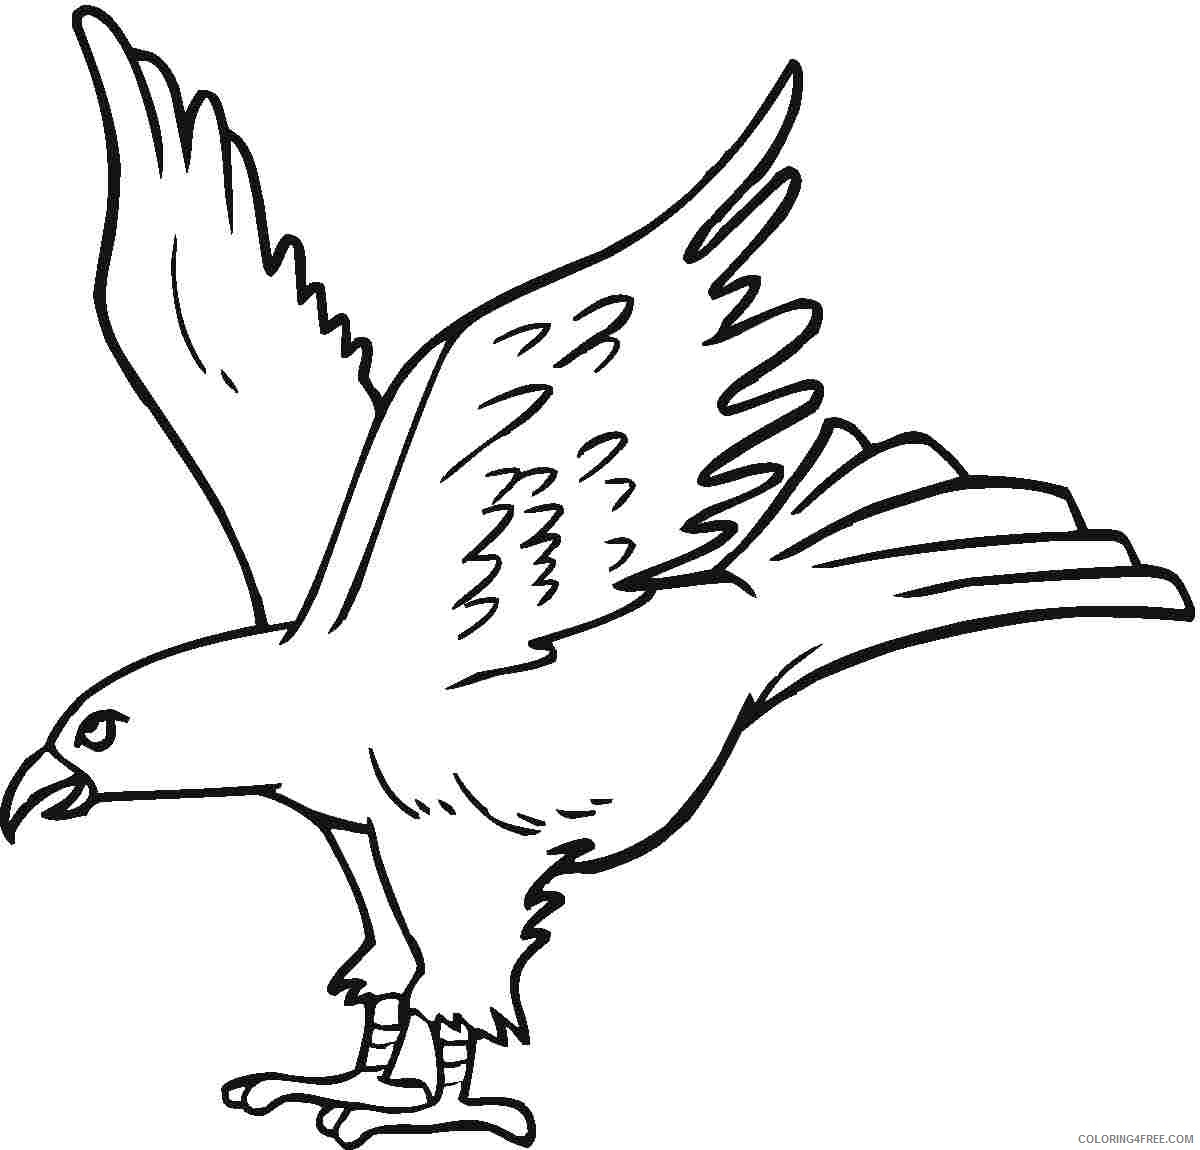 eagle coloring pages for kids Coloring4free